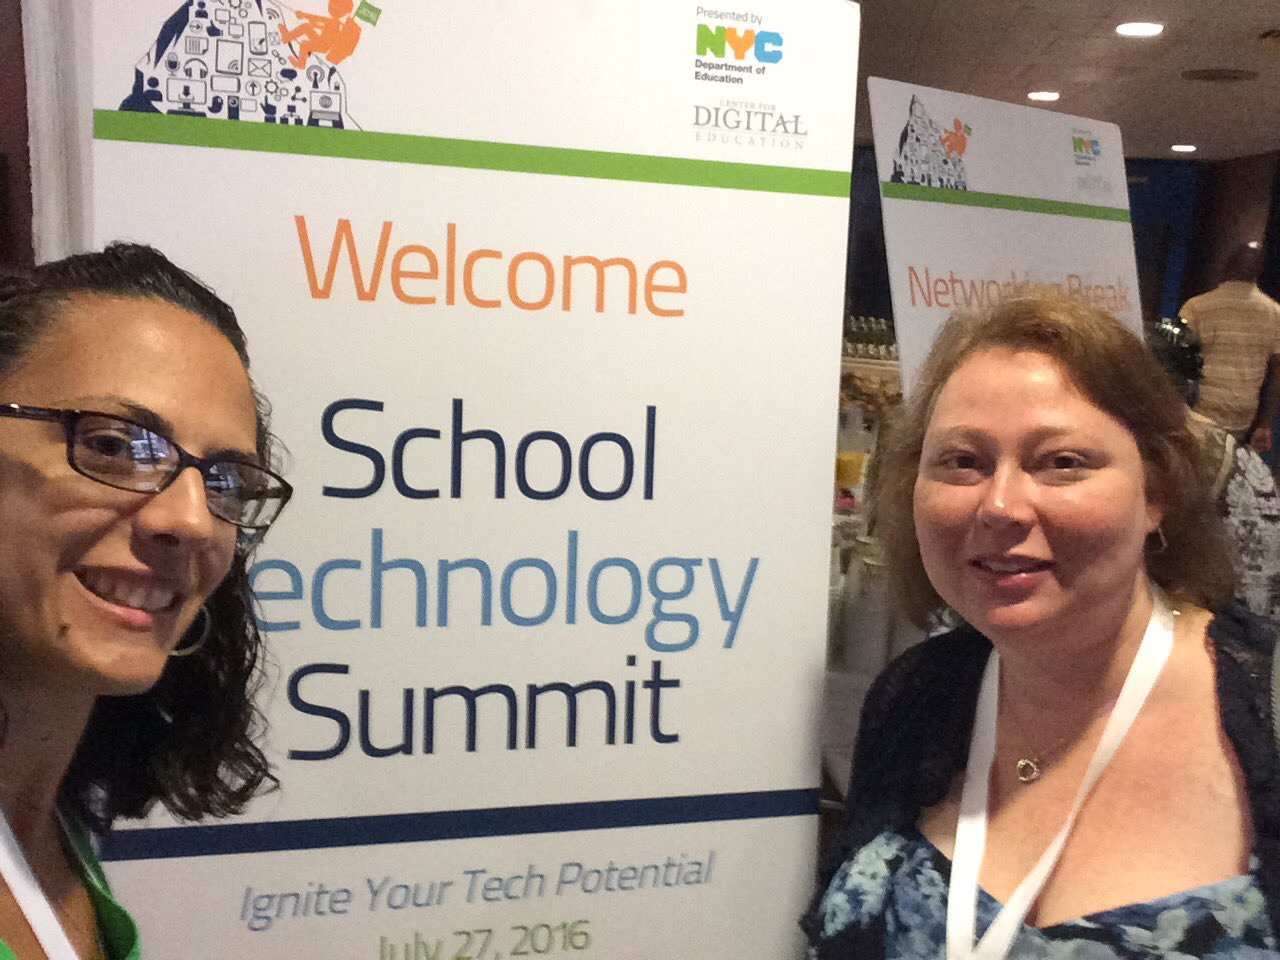 @TechTeachNY #nycschoolstech selfie! https://t.co/46cjy3712V